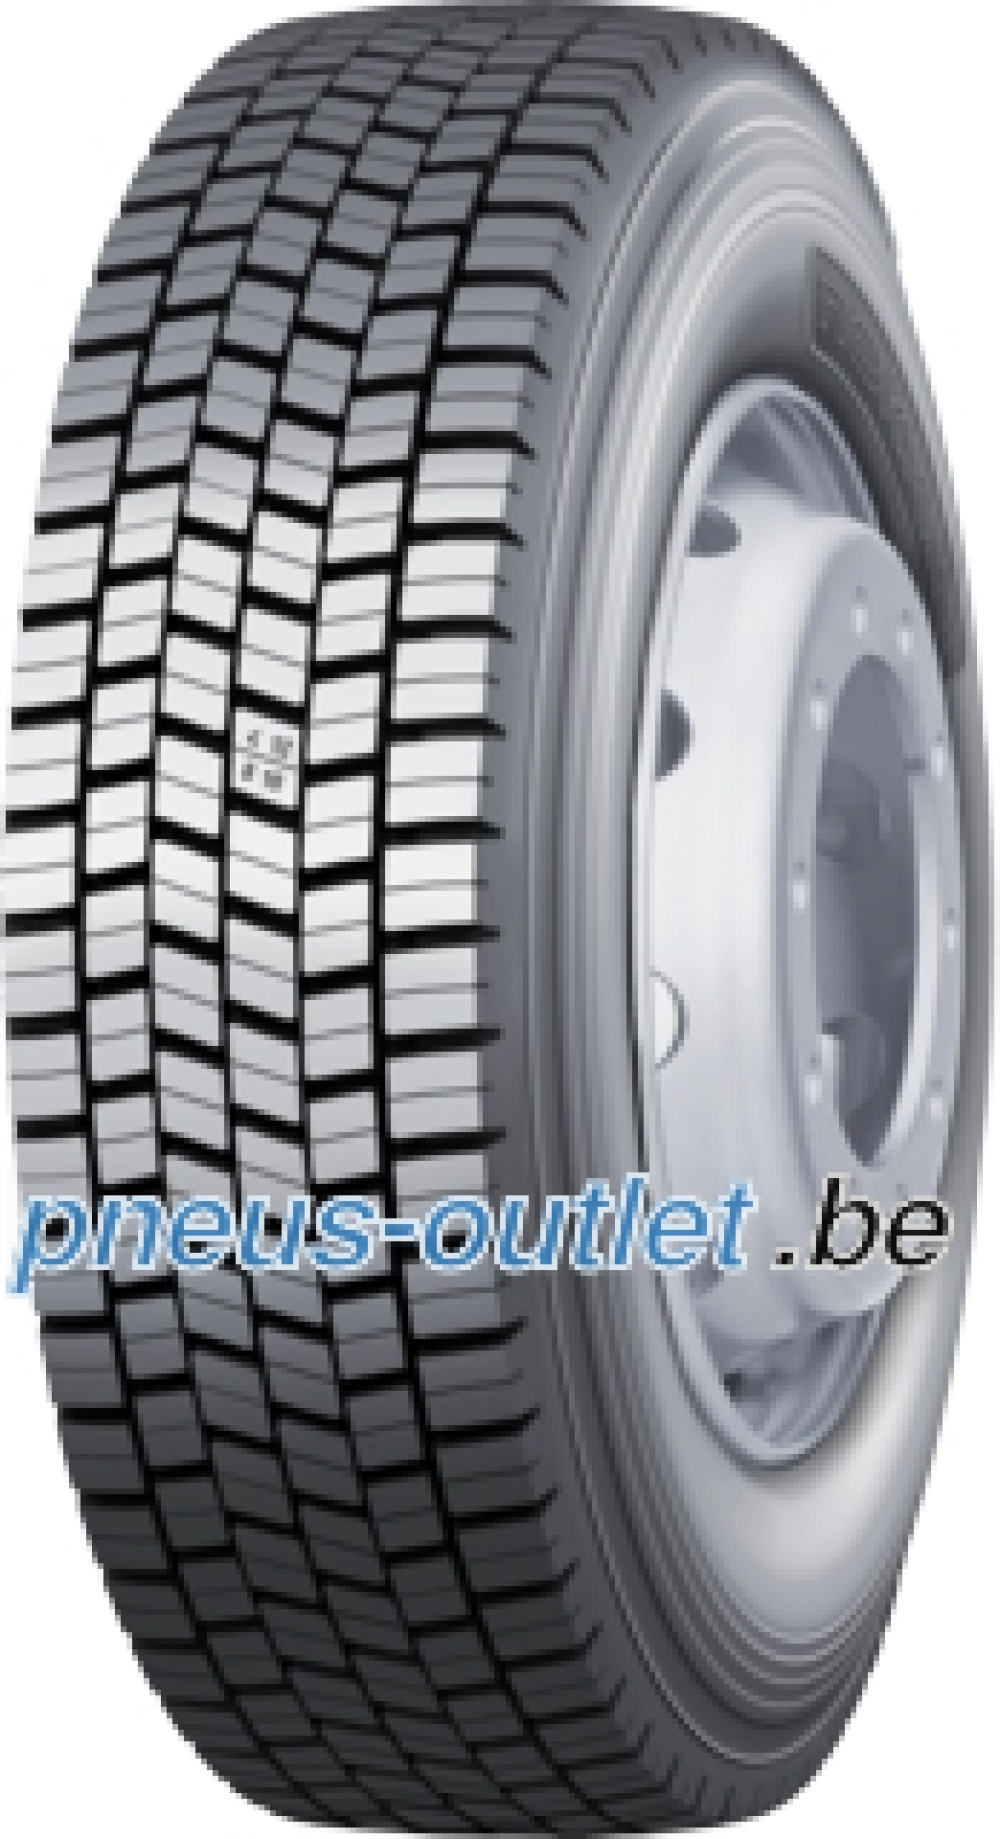 Nokian NTR 45 ( 315/70 R22.5 154/150L Double marquage 152/148M )